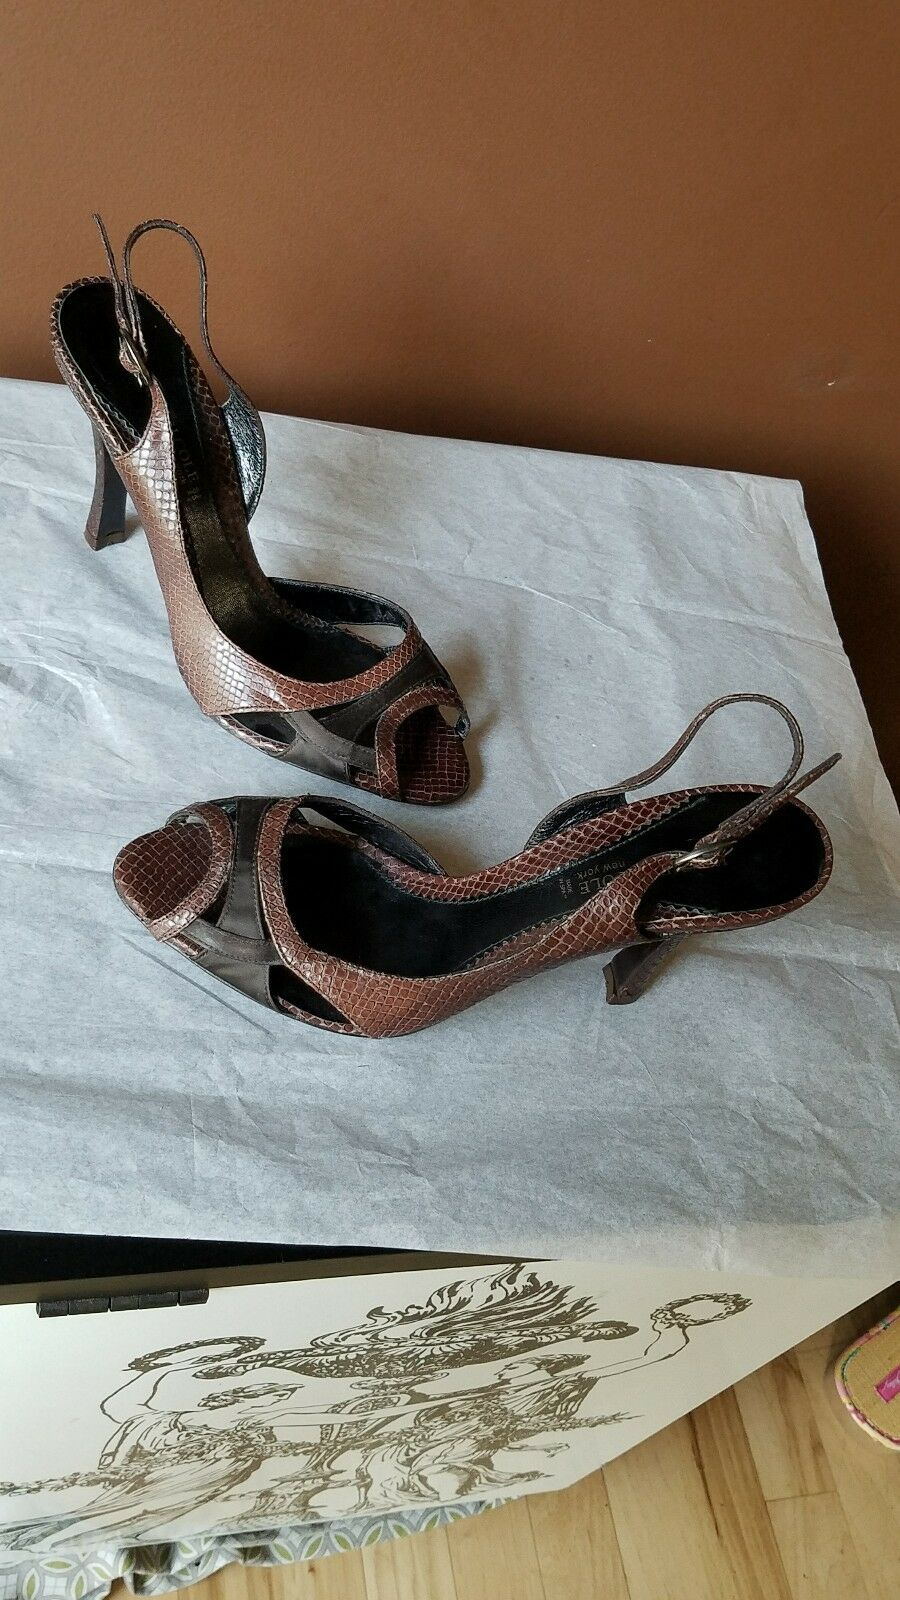 Kenneth Cole New York Sandals Brown w/Black Accents Leather Sandals York Size 8.5 MadeinSpain 737f06